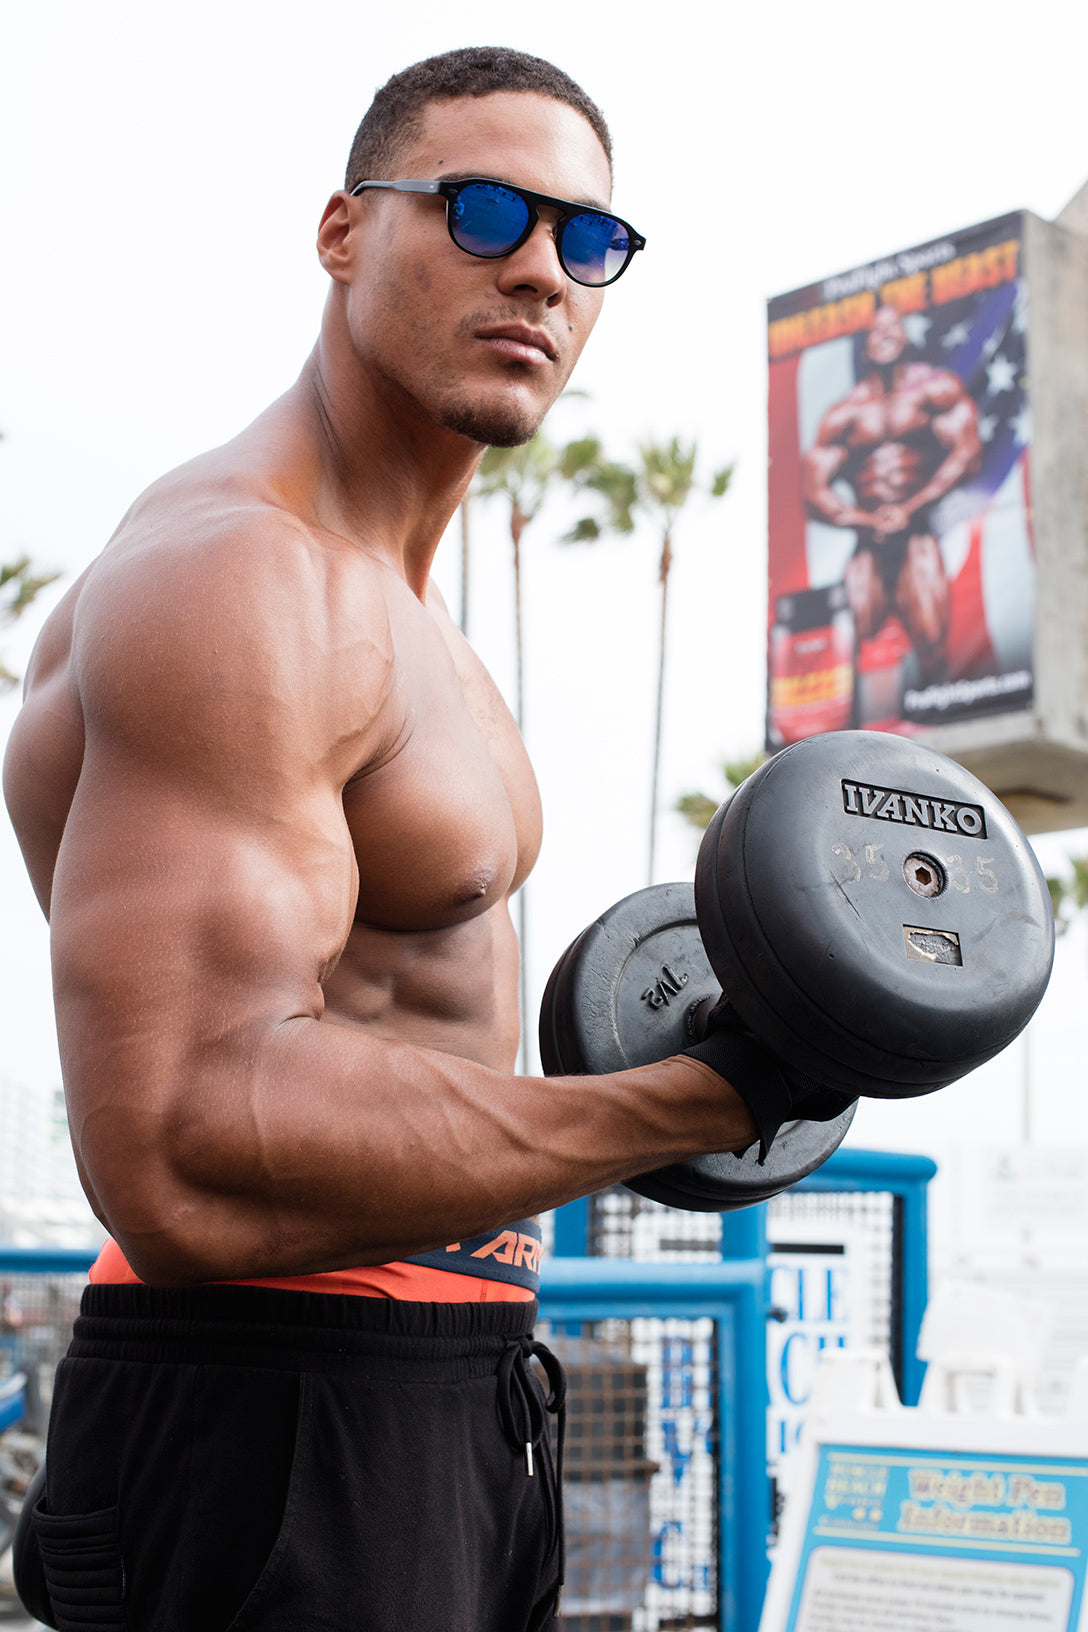 Muscle beach body builder poses with a 35lb dumbbell GLCO sunglasses